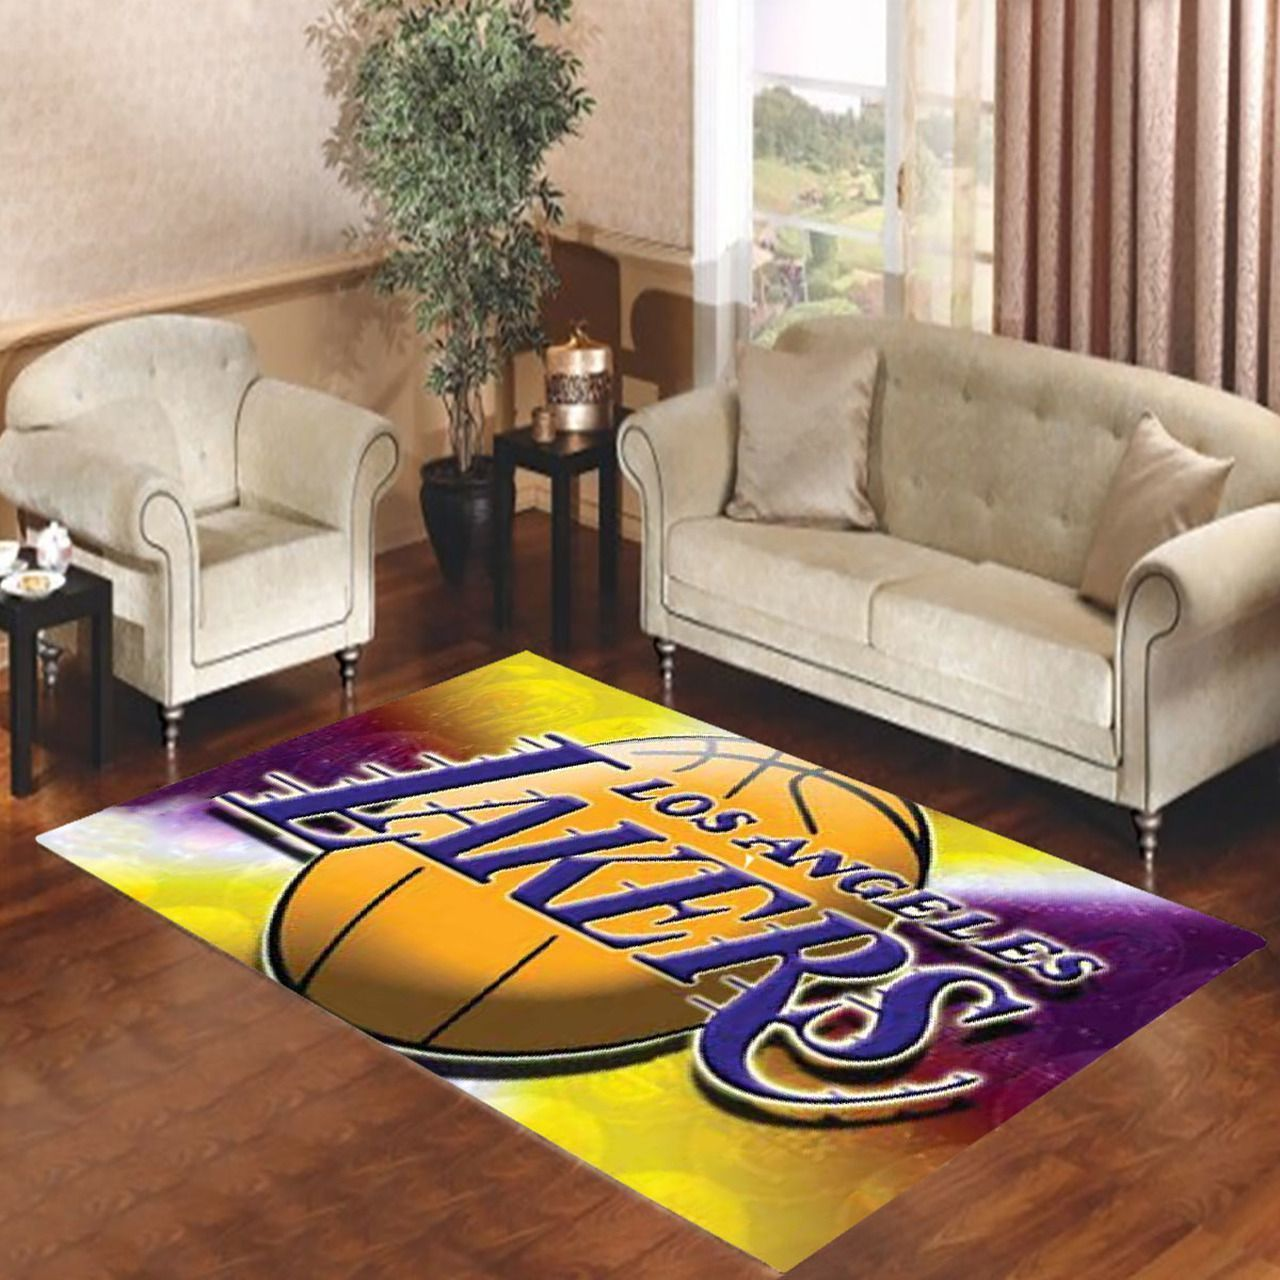 Amazon Los Angeles Lakers Living Room Area No3656 Rug